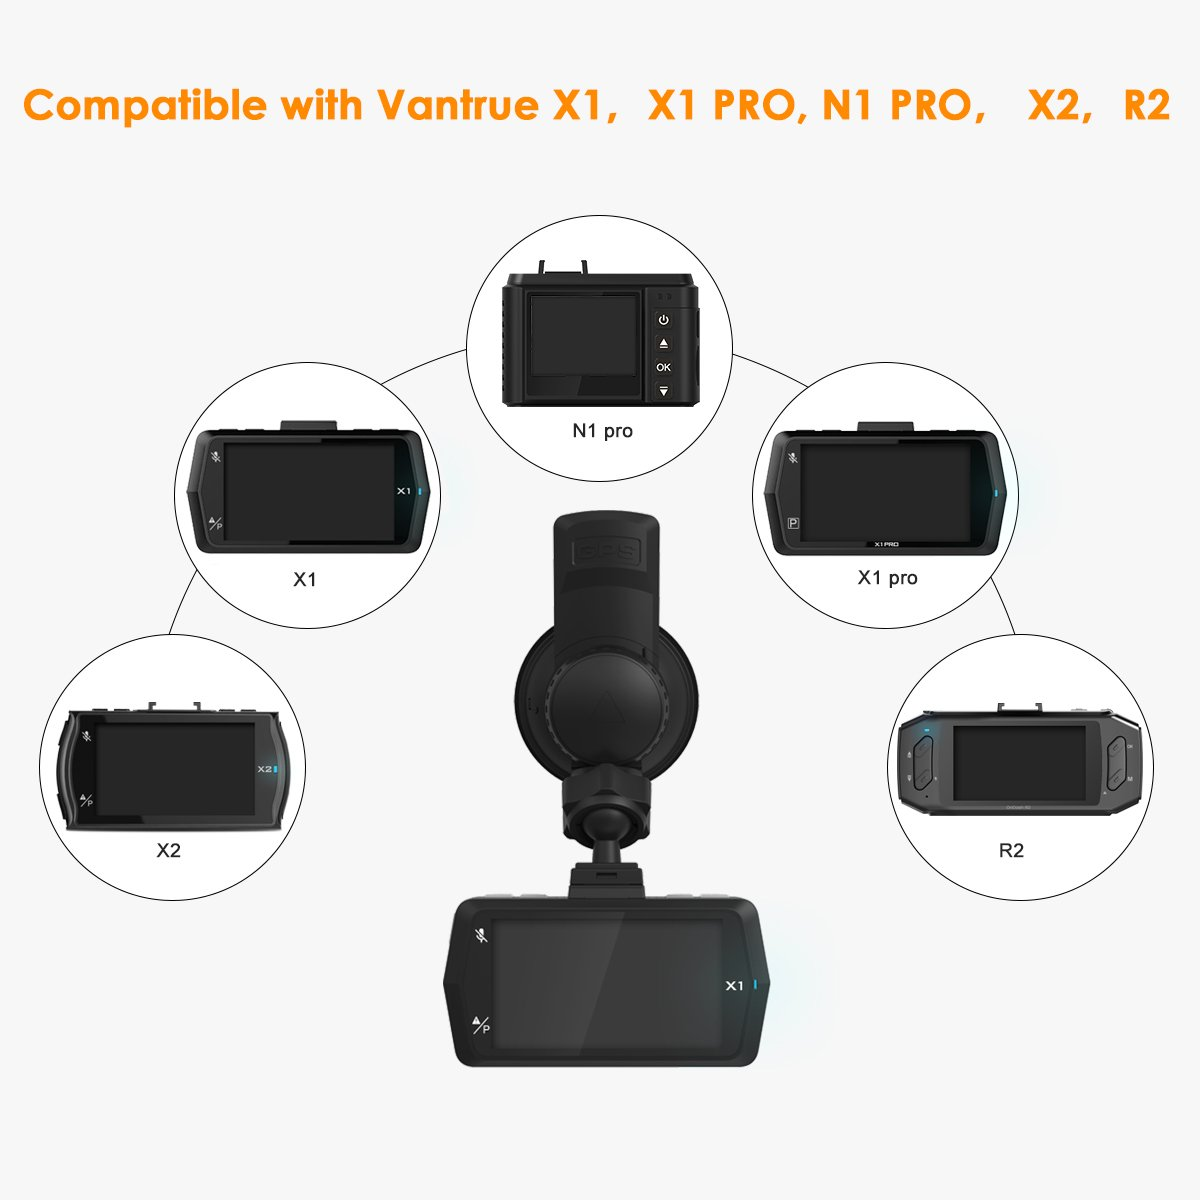 N1 Pro X1PRO Upgrade New Version Vantrue X1 R2 Dash Cam Mini USB Port Car Suction Cup Mount with GPS Receiver Module for Windows and Mac X2